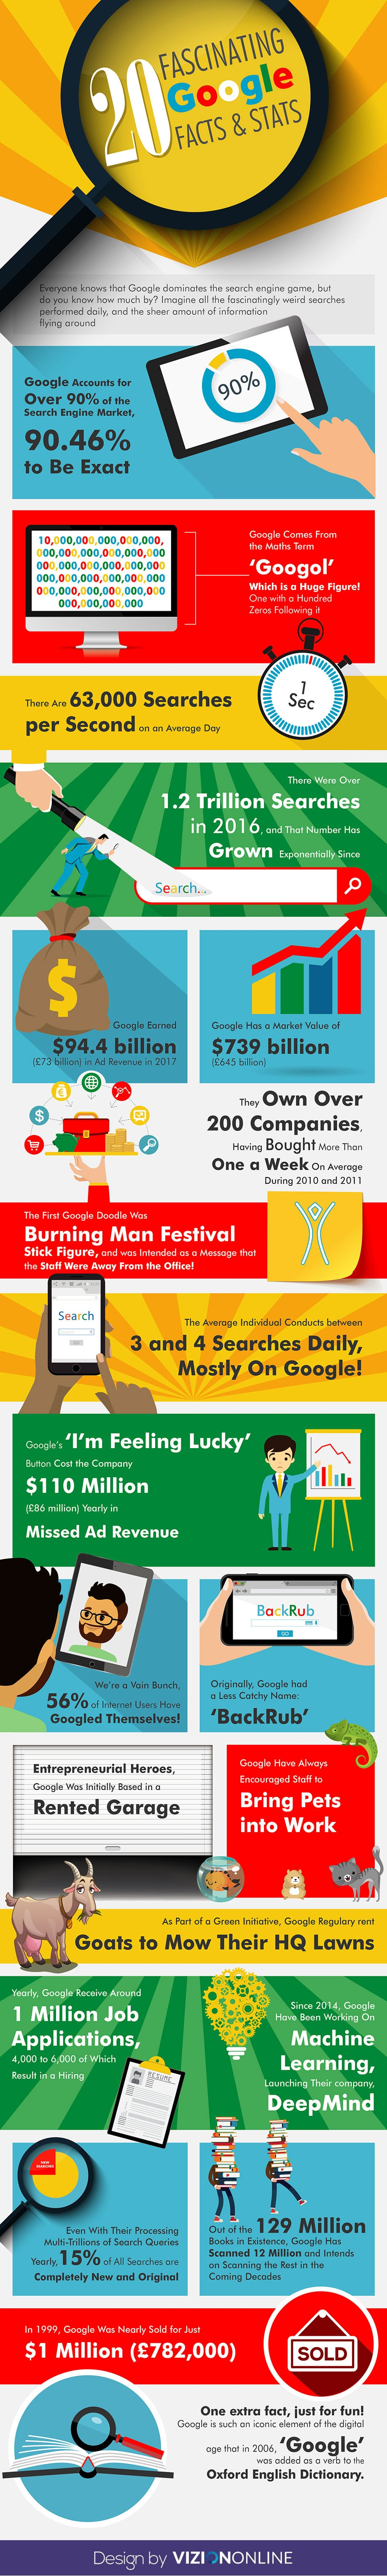 20 Fascinating Google Facts & Stats (Infographic)